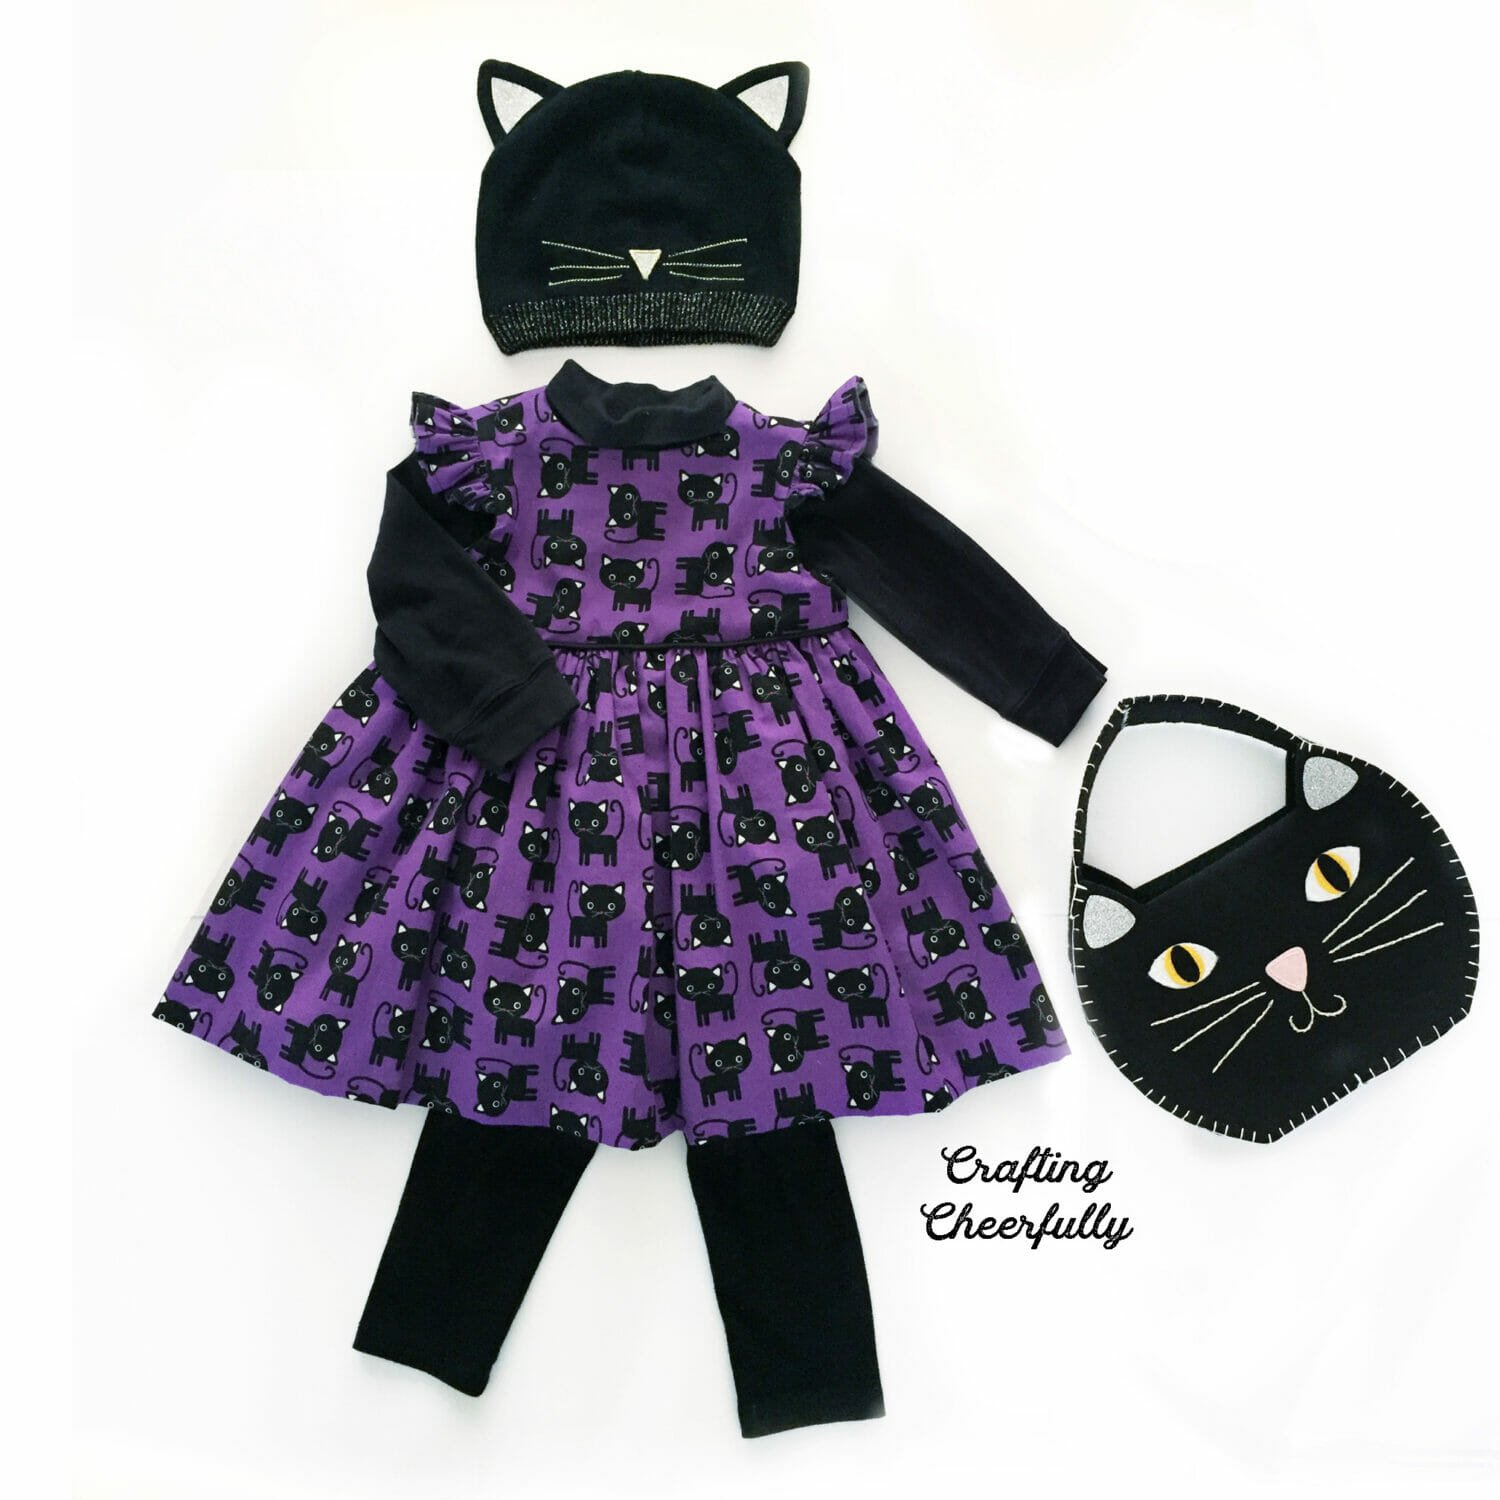 Little Black Cat Dress for toddlers with black cat hat and purse